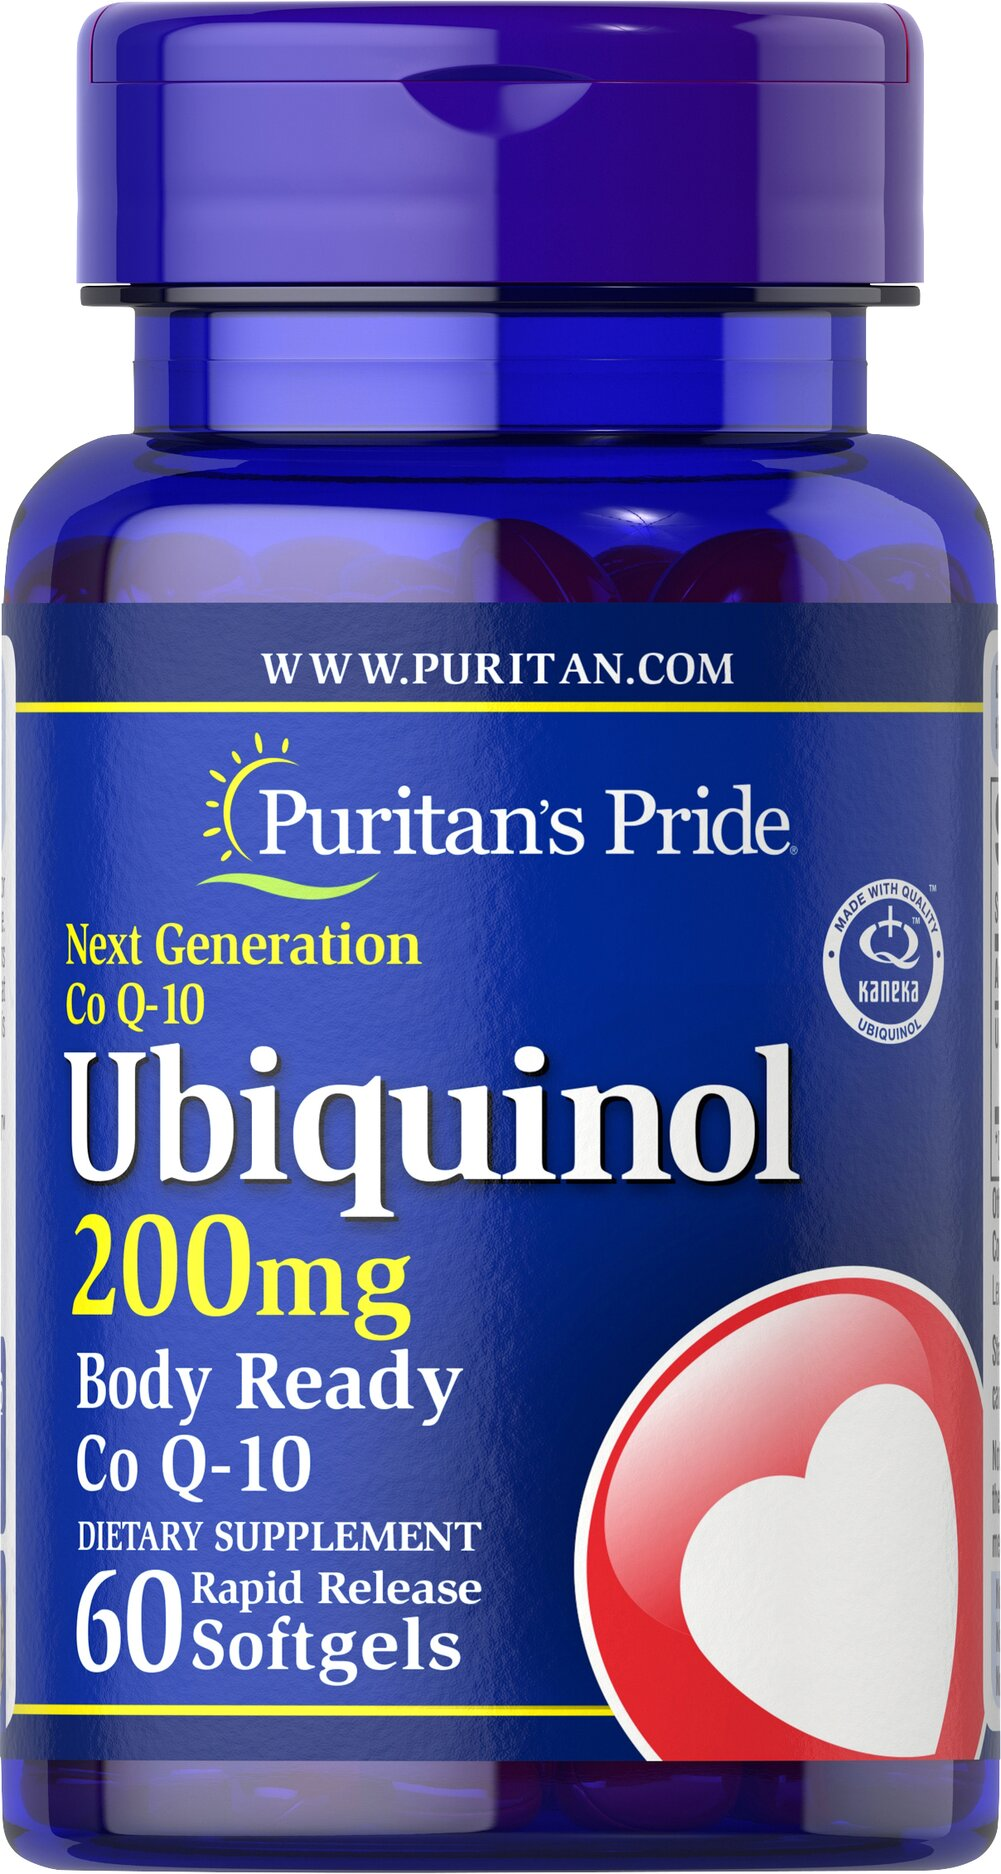 Ubiquinol 200 mg  <p>Advanced, active form of Co Q-10</p><p>Promotes a healthy heart and cardiovascular system.**</p><p>Exceptional antioxidant properties.**</p><p>Ordinary Co Q-10 supplements must be converted in the body to Ubiquinol to provide benefits…so by supplementing with Ubiquinol, you're saving your body a step and reaping healthful benefits right away!**</p><p>Studies indicate that Co Q-10 levels may decline as we age.</p> 60